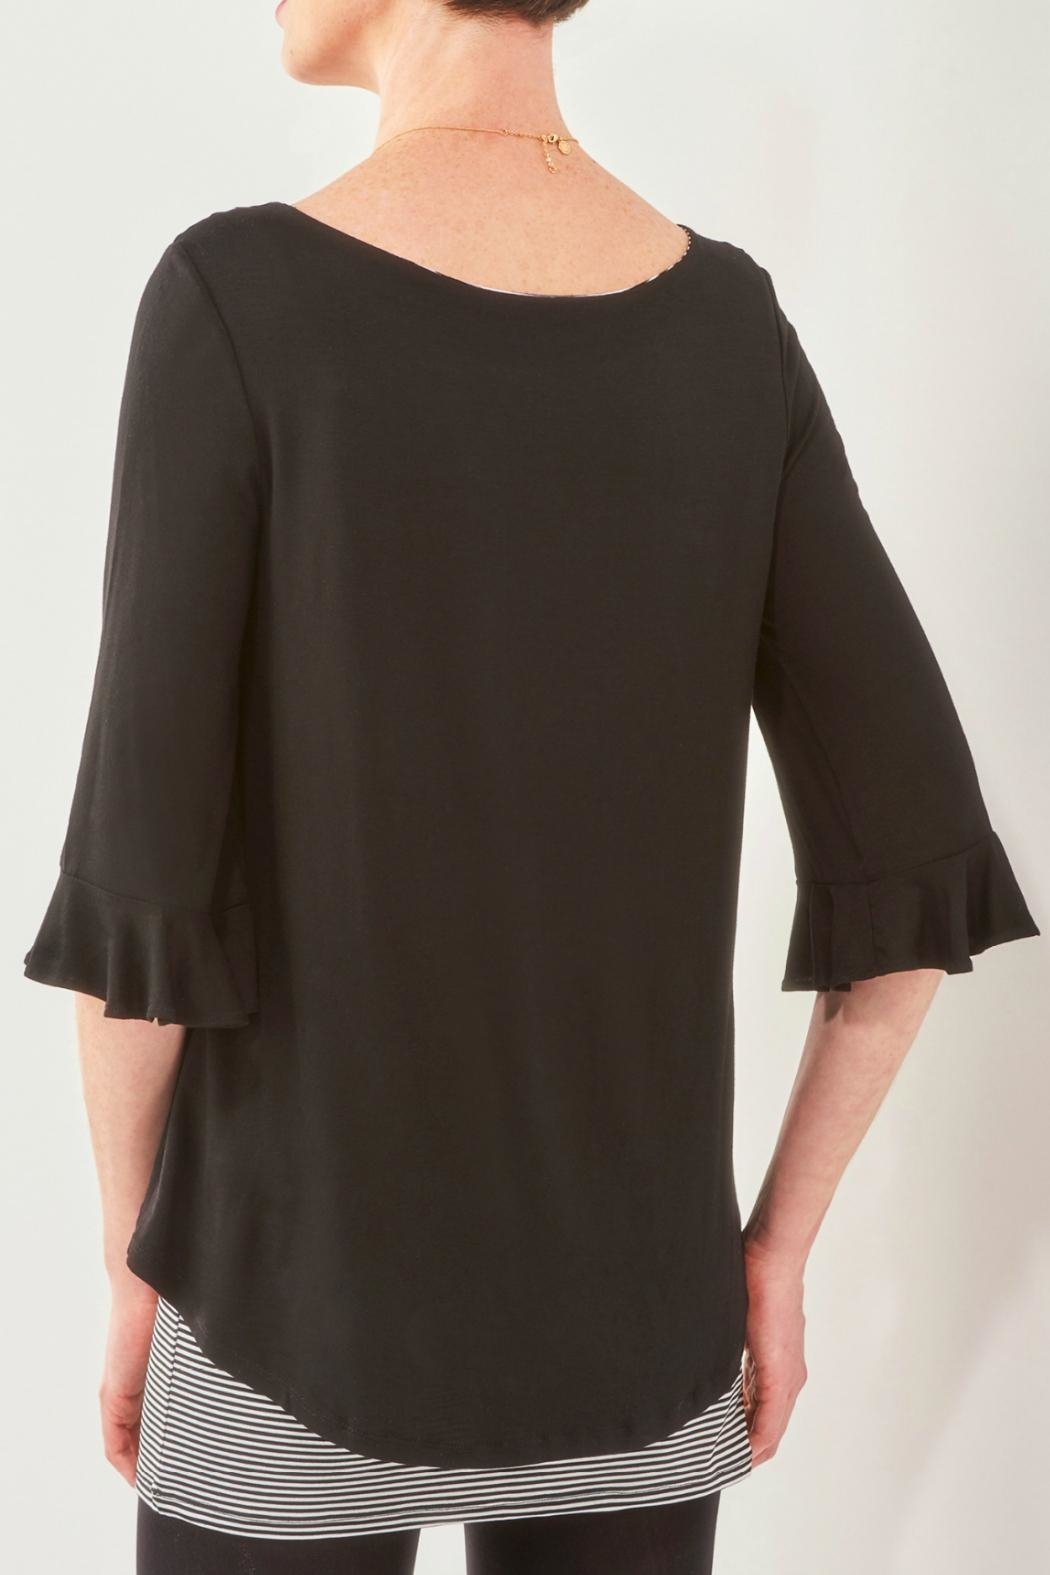 Charlie Paige 3/4-Sleeve Fooler Tunic - Front Full Image